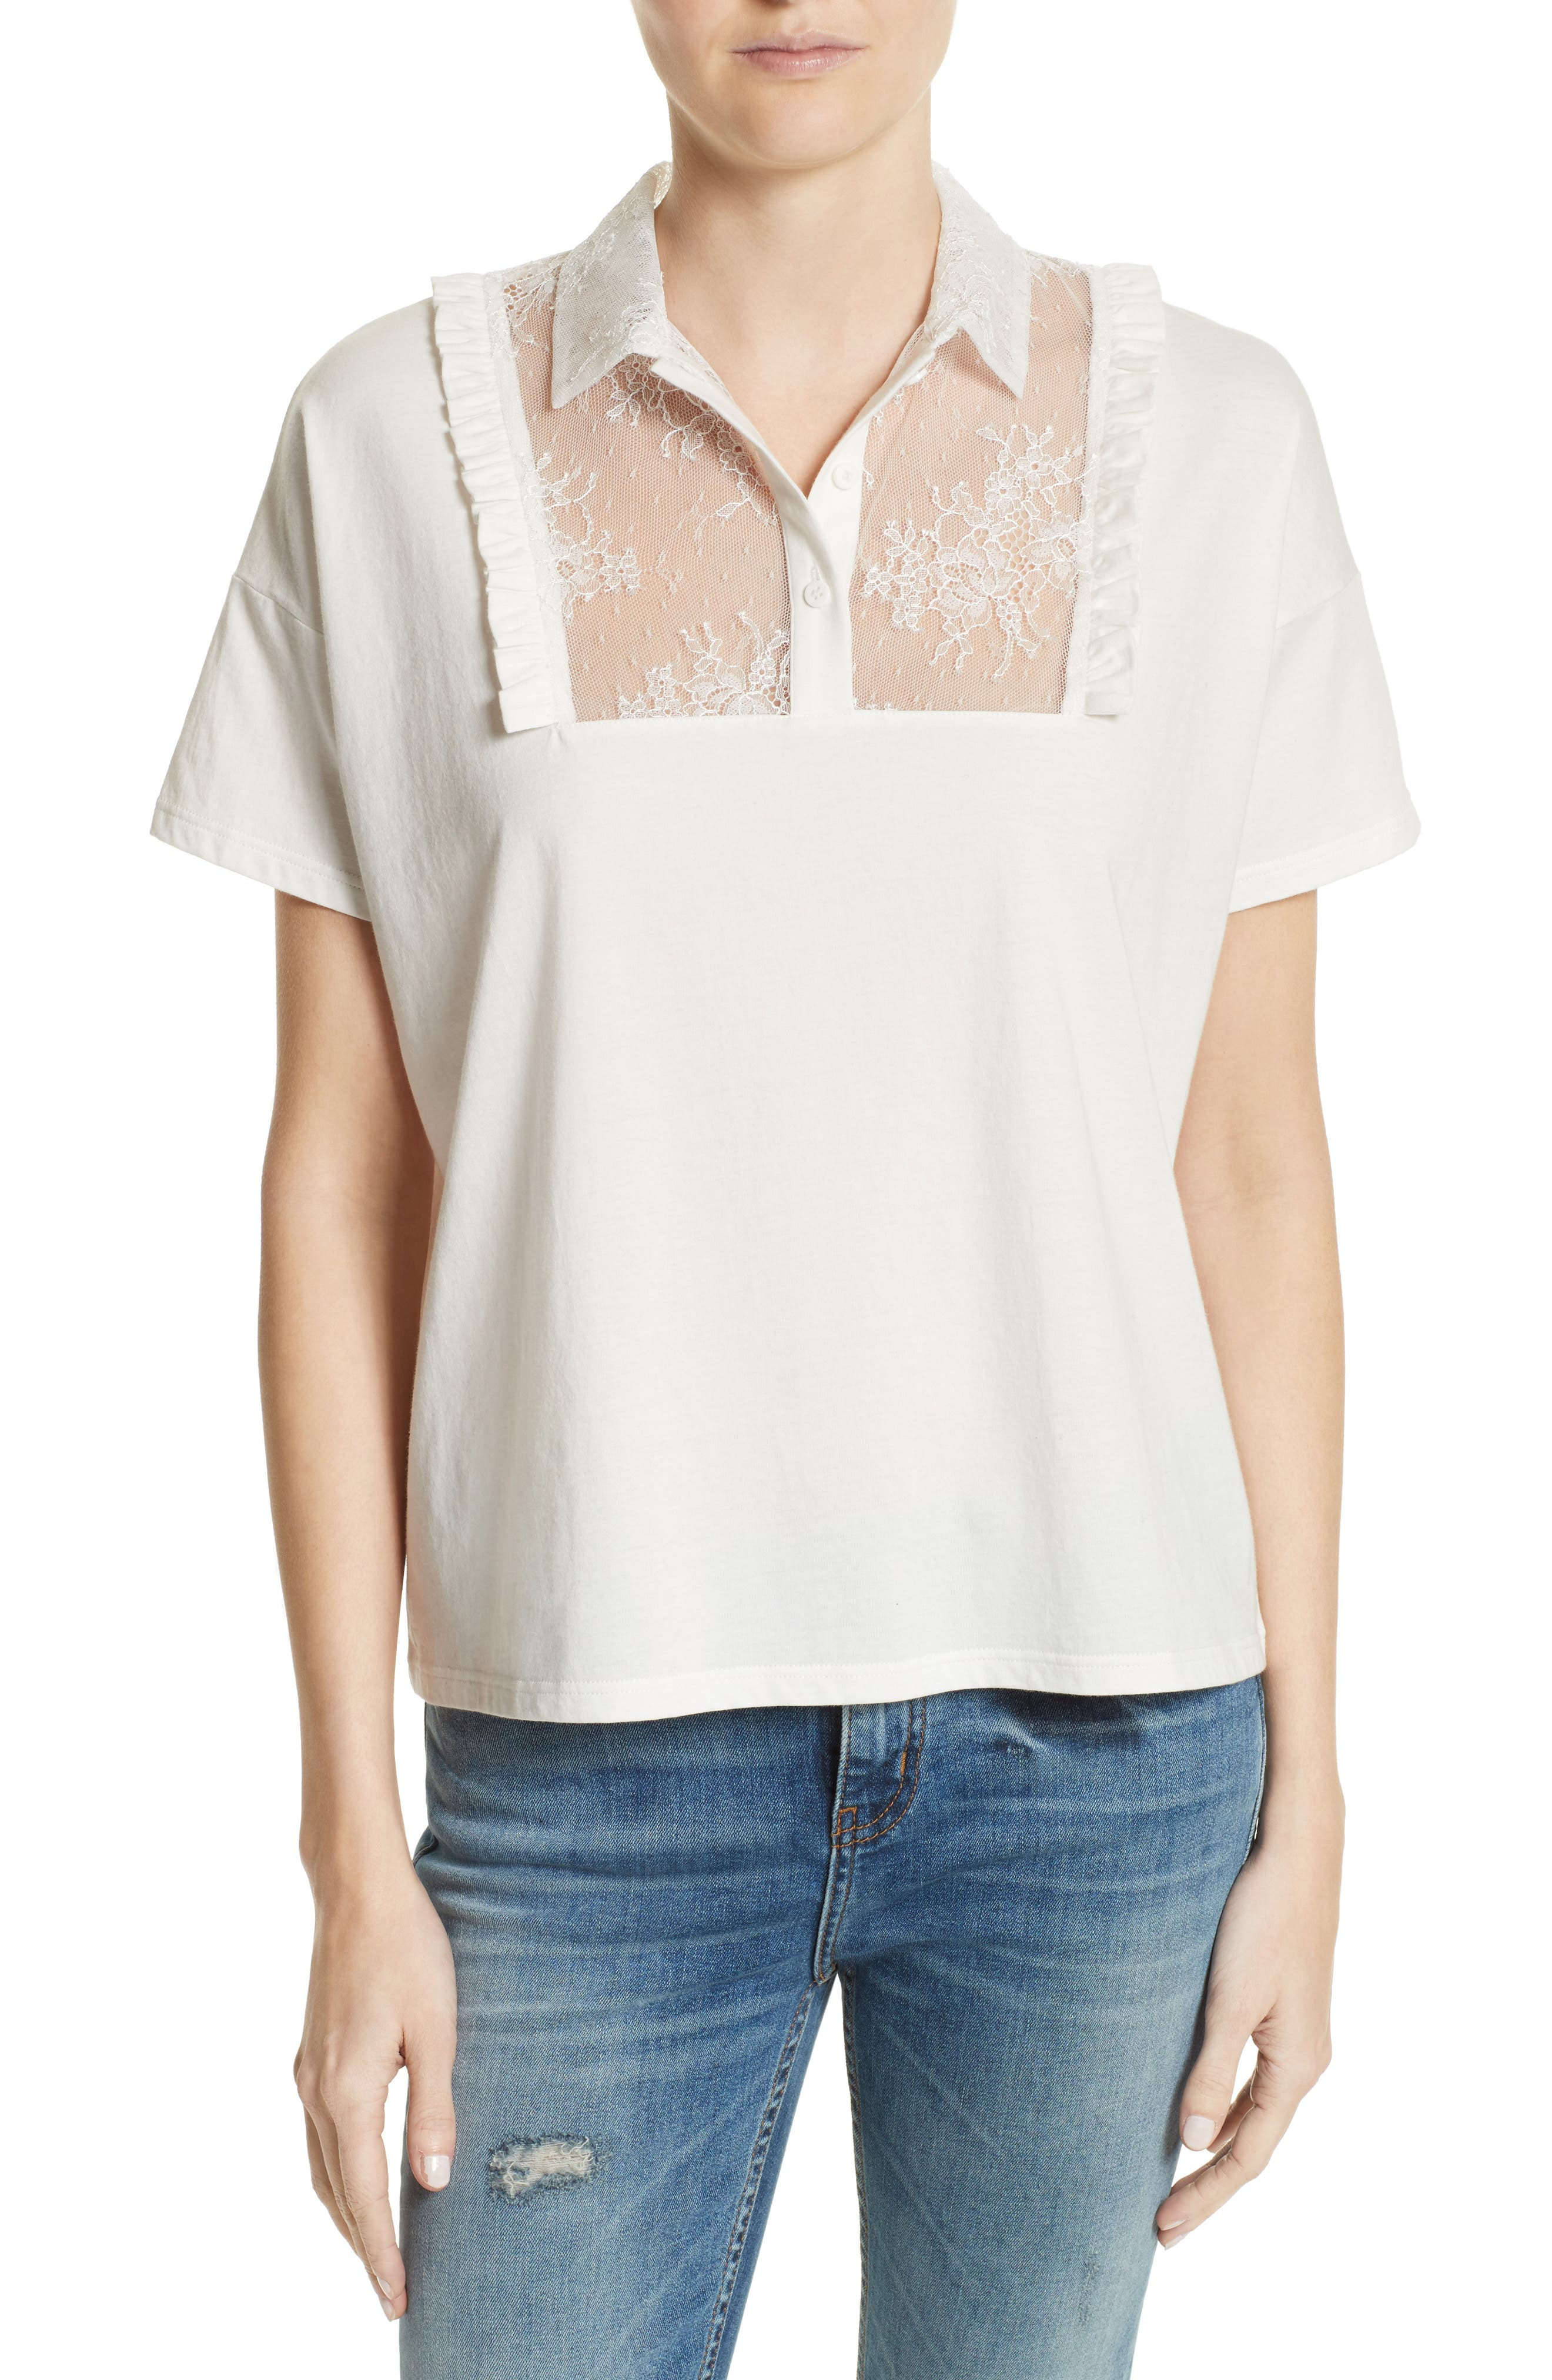 Main Image - The Kooples Lace & Ruffle Cotton Top